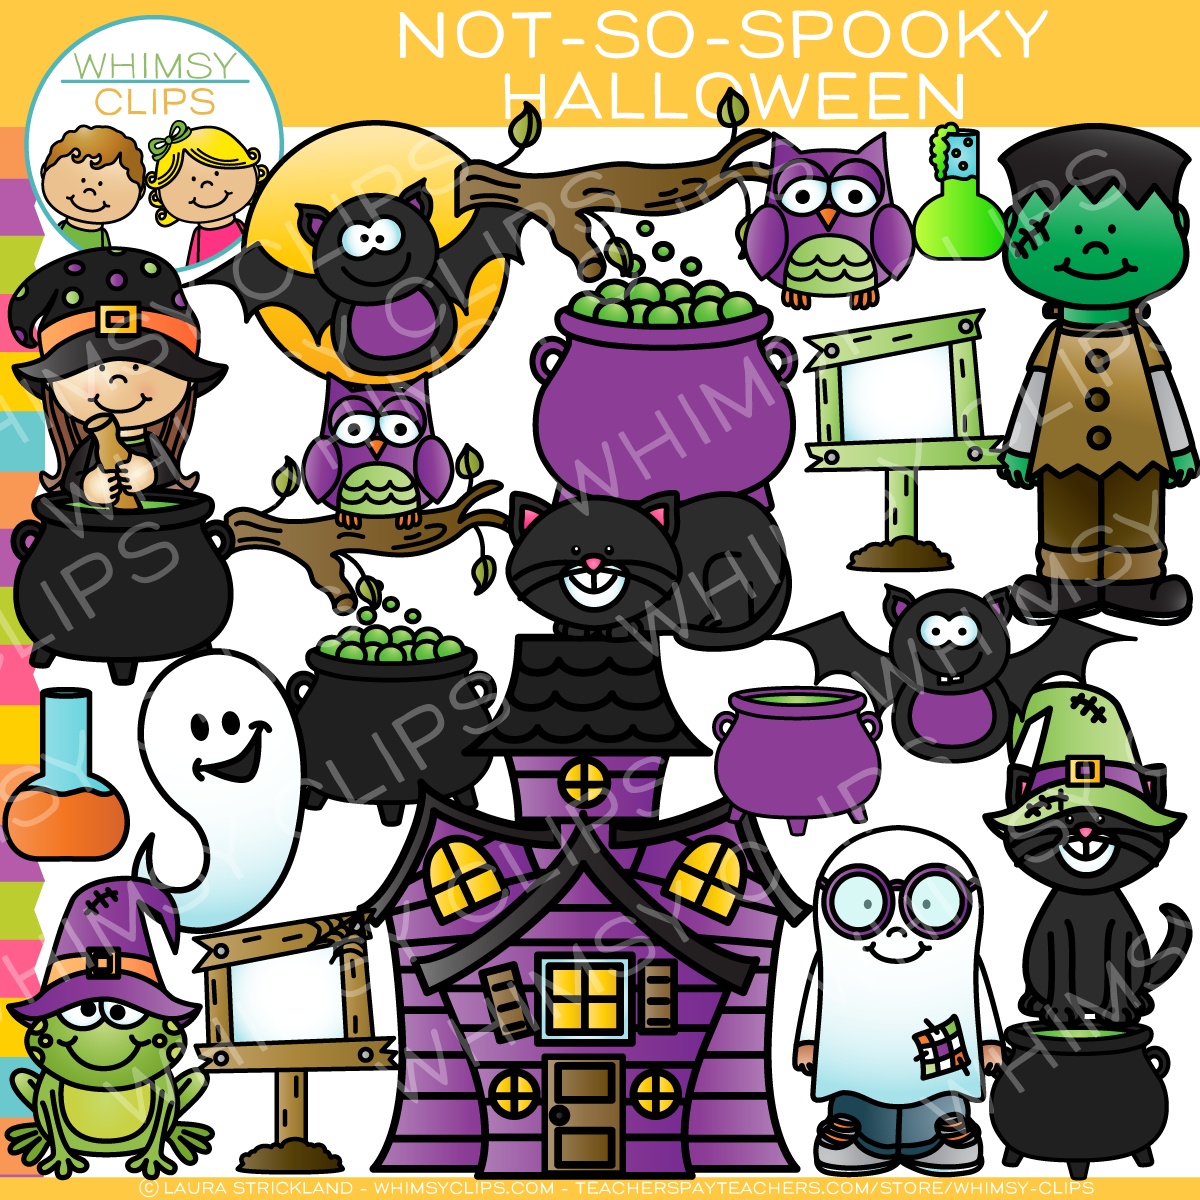 not so spooky halloween clip art images illustrations whimsy clips rh whimsyclips com spooky halloween eyes clip art Halloween Monster Clip Art